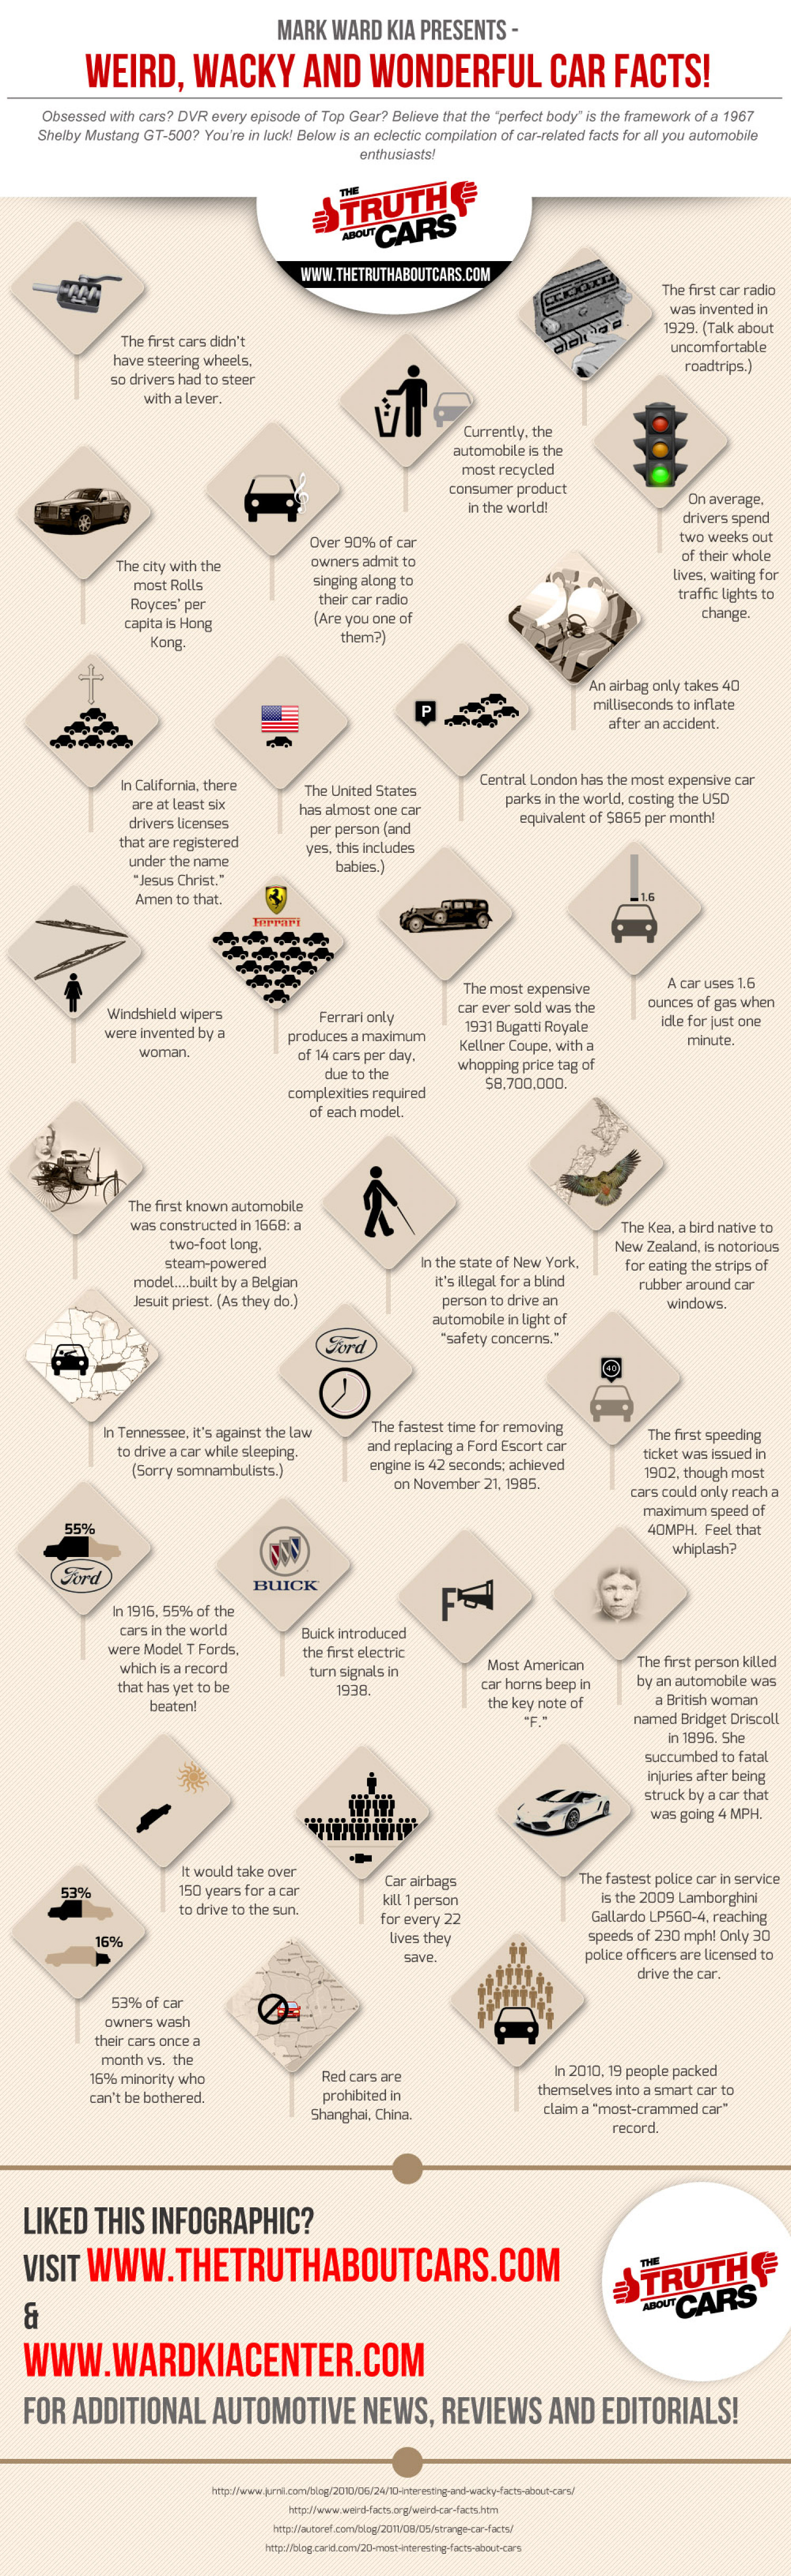 Weird , Wacky and Wonderful Car Facts ! Infographic